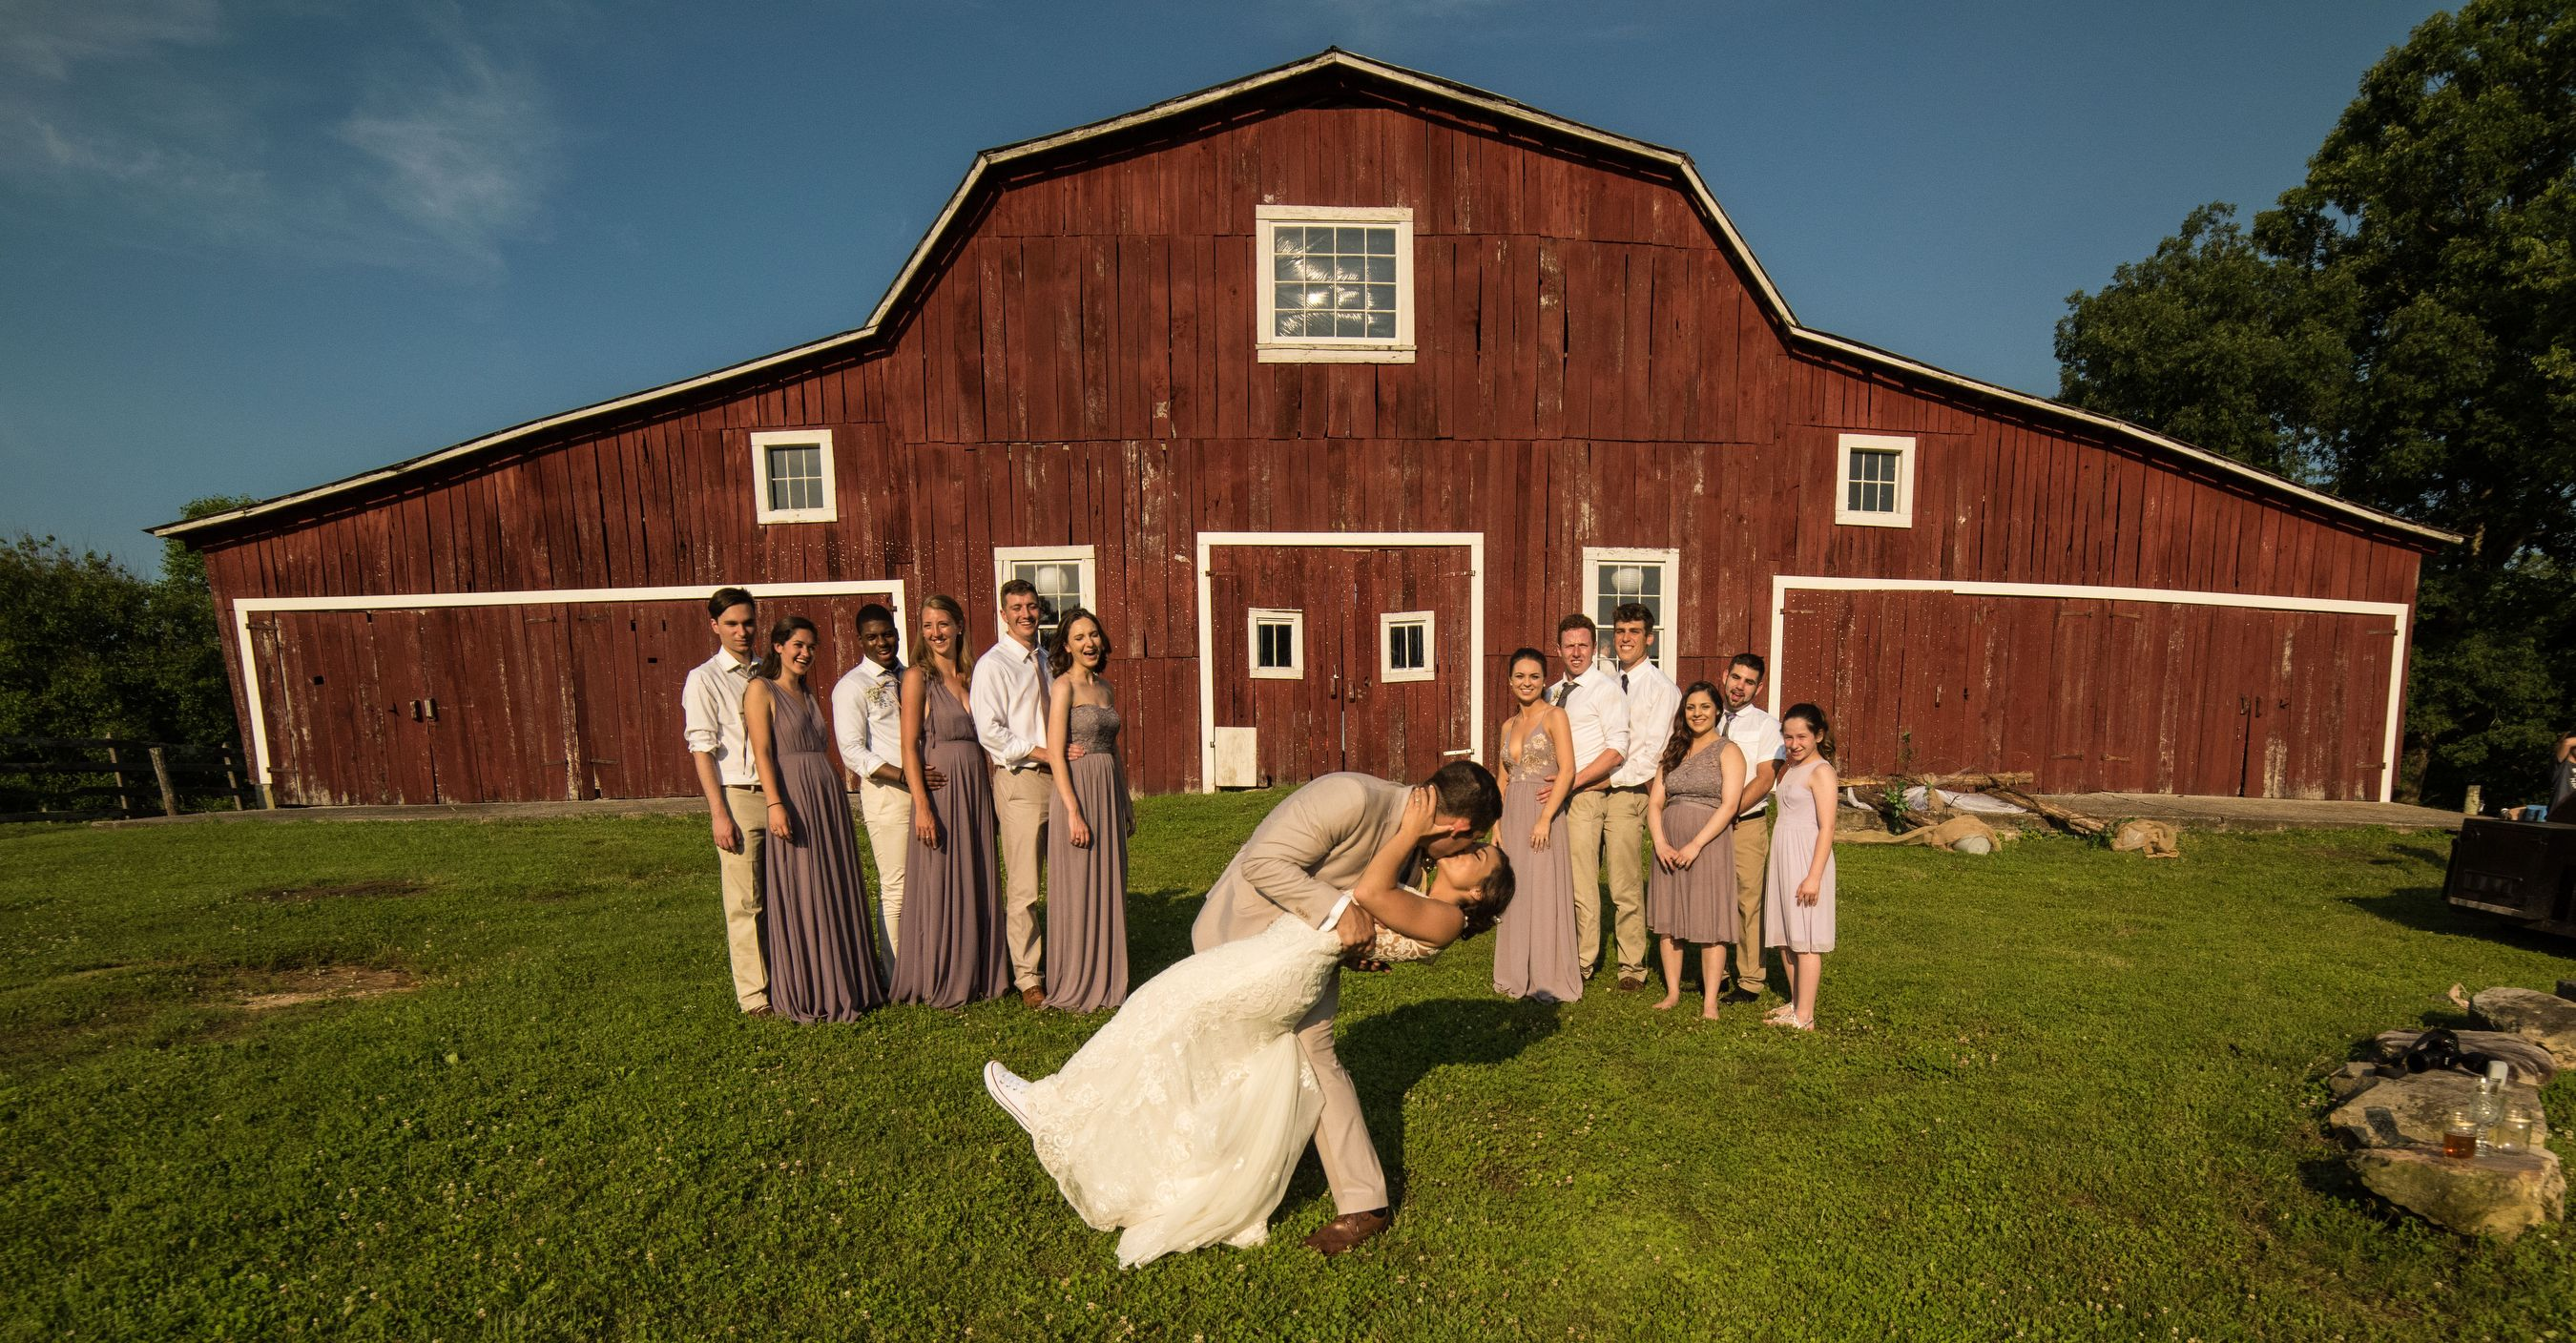 Bridal Party At The Barn Wedding